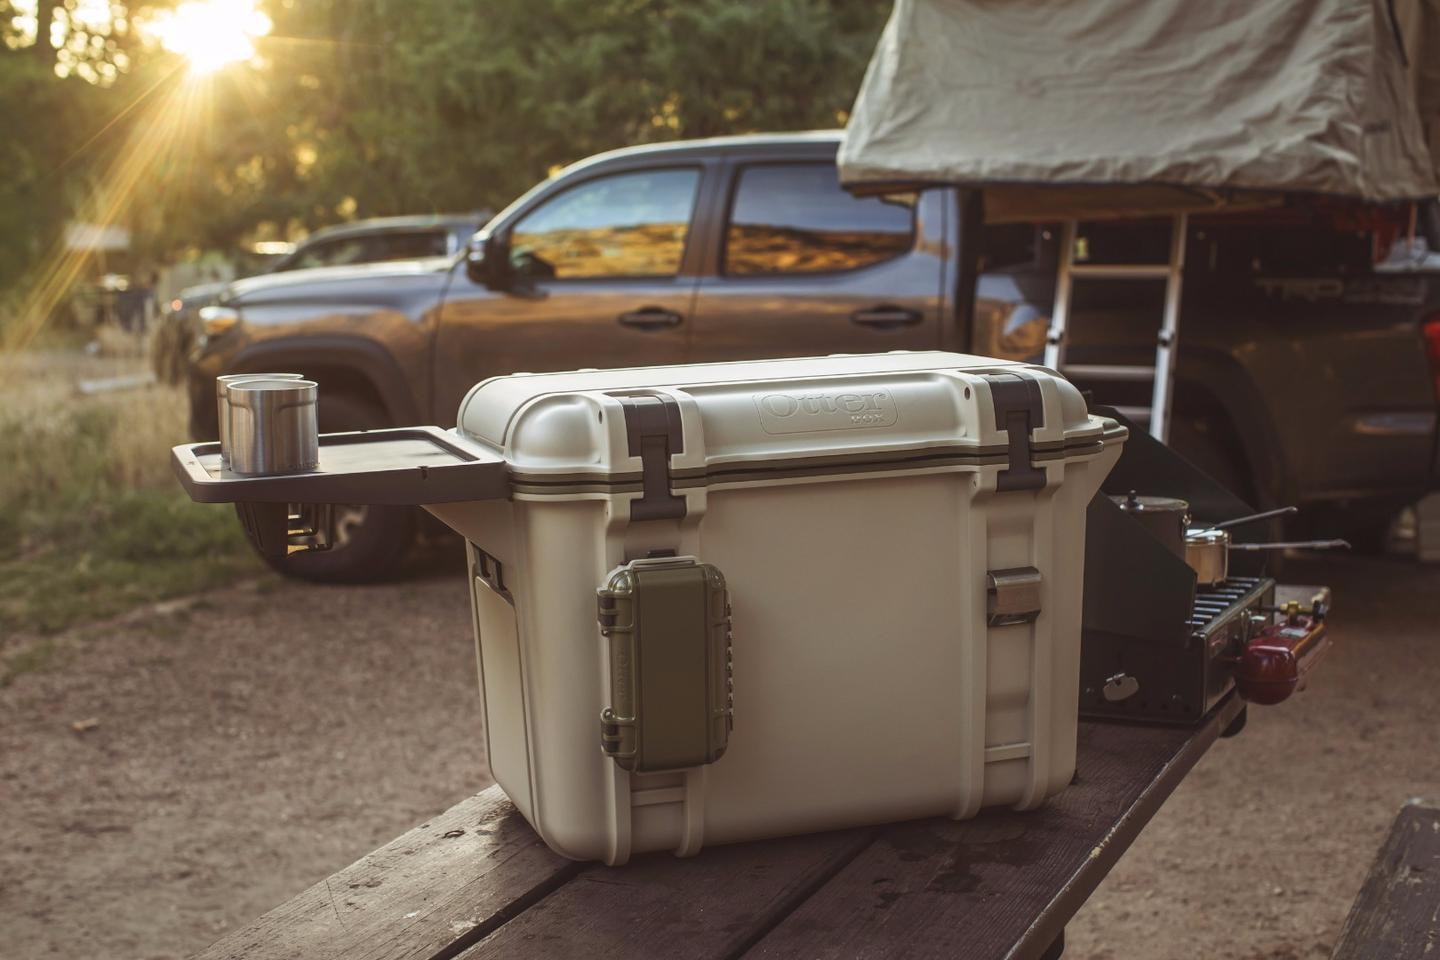 The modular Venture cooler isn't cheap, but it is capable